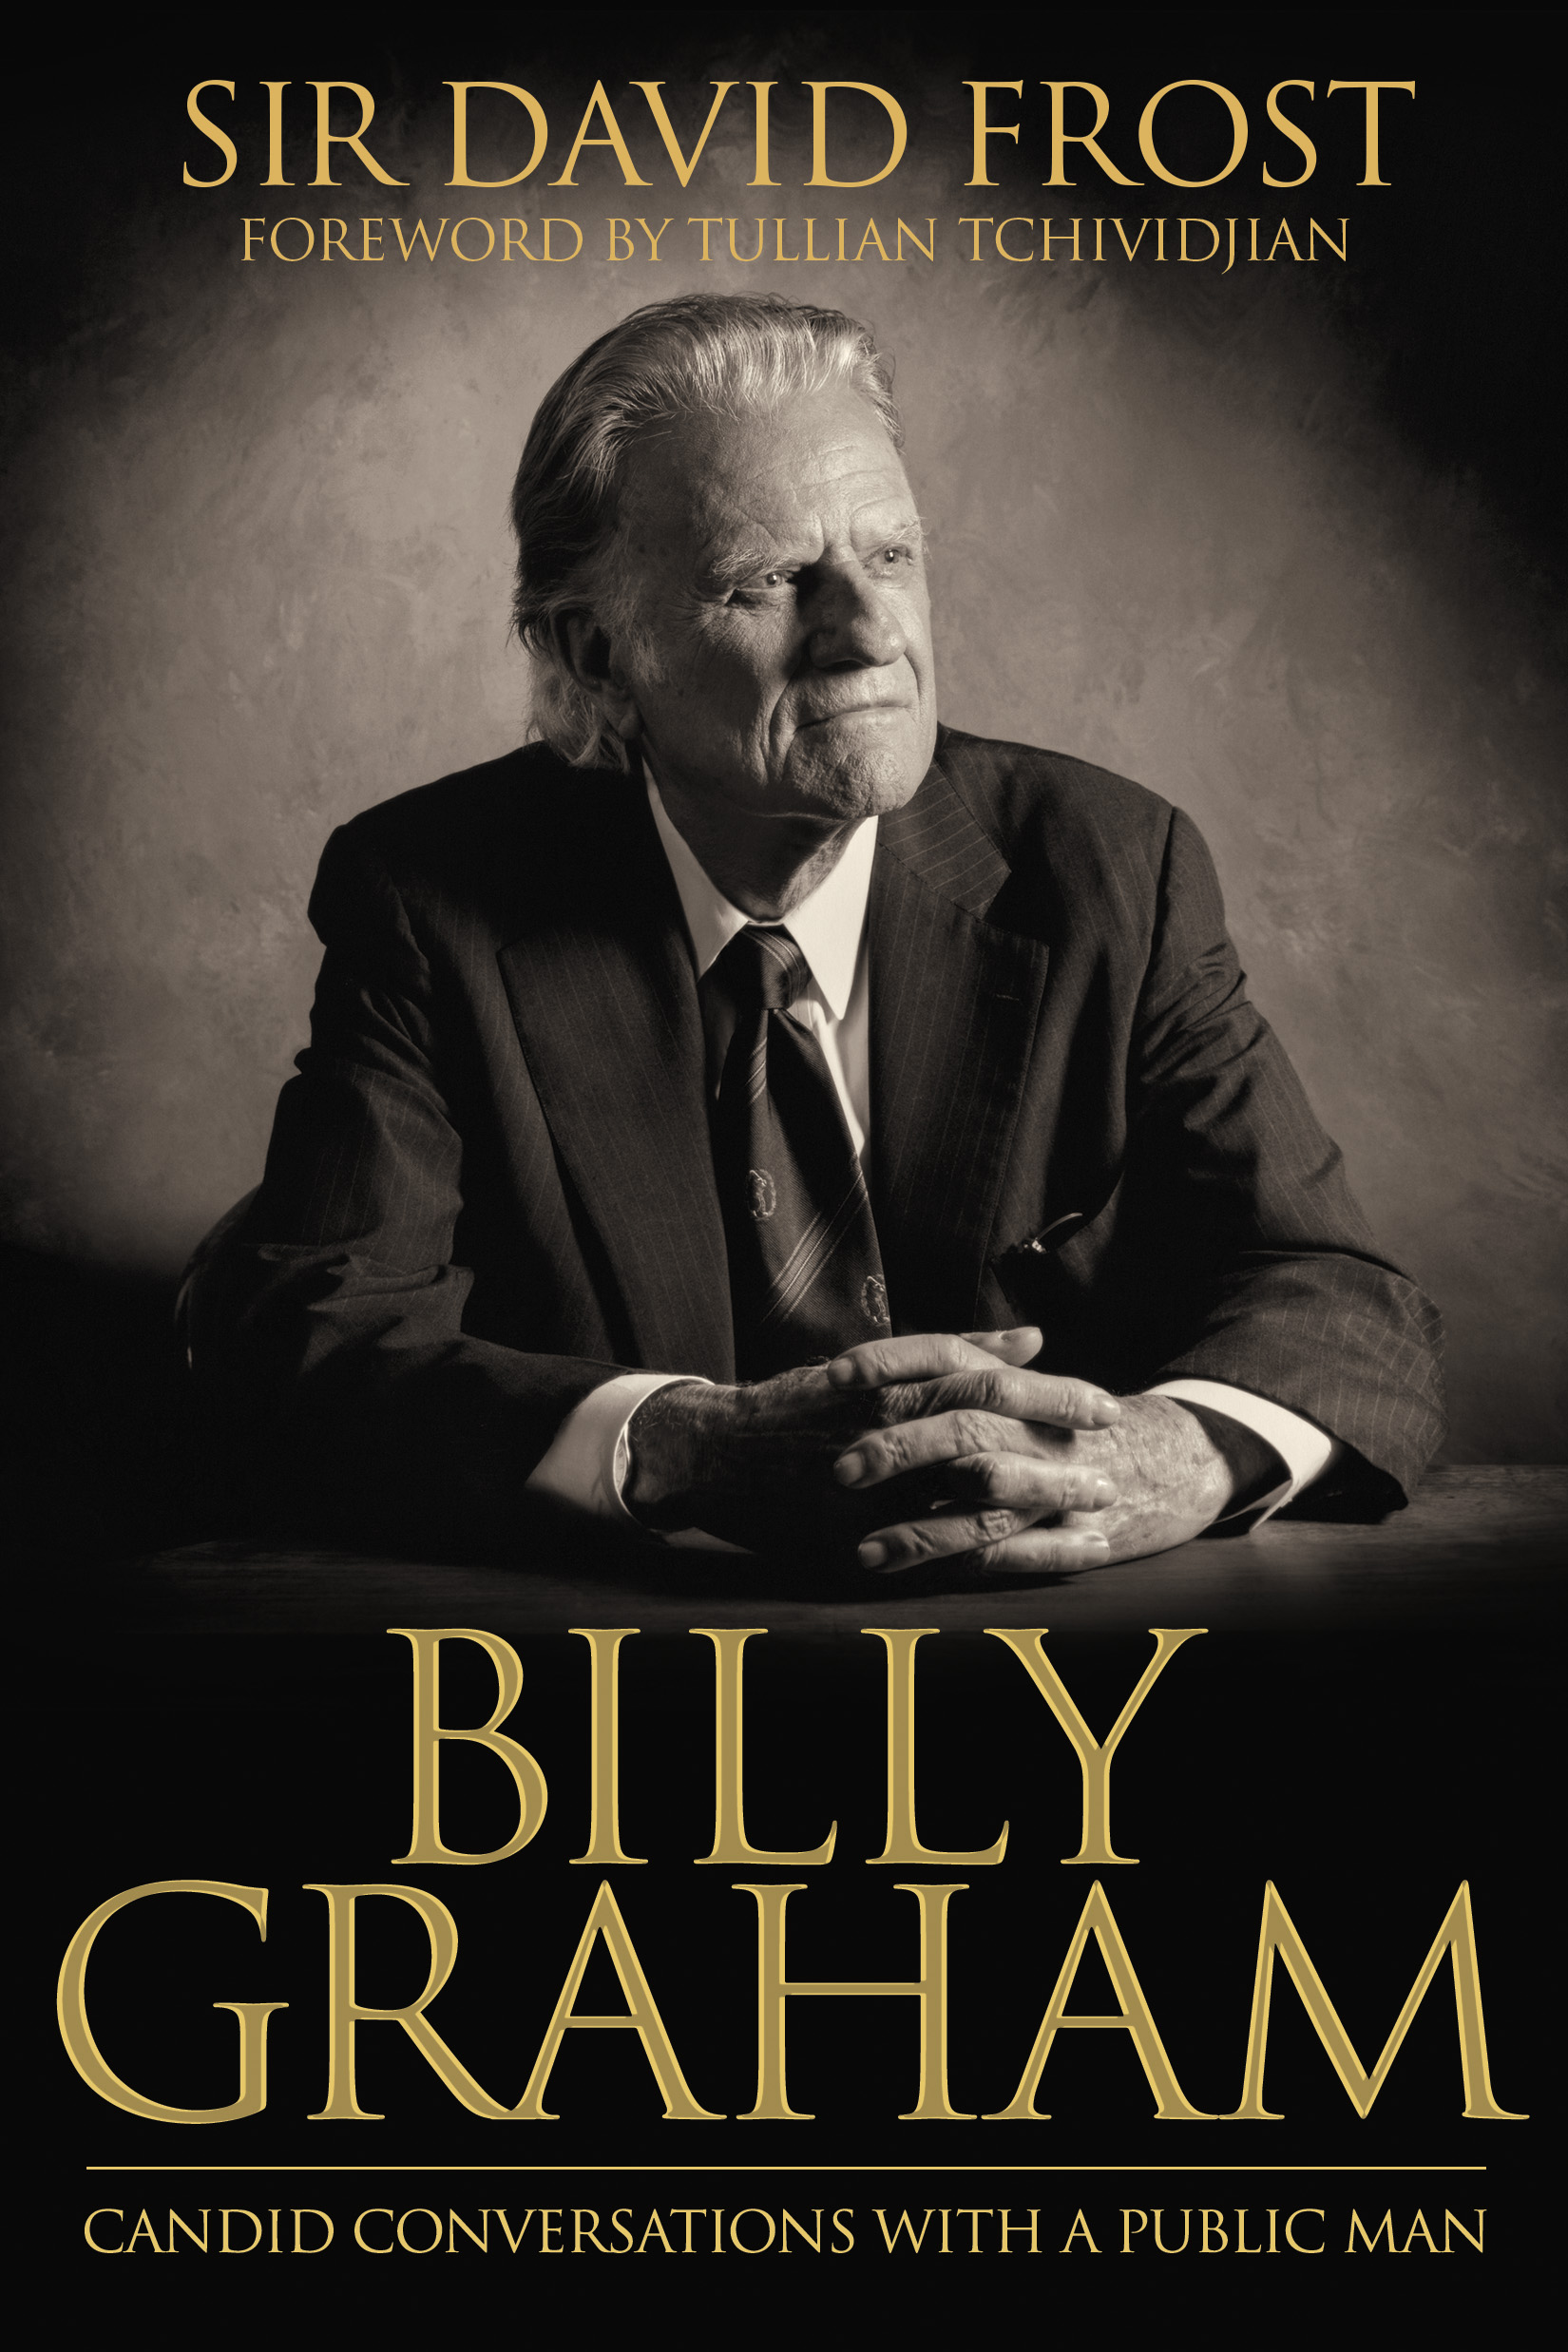 Billy Graham Candid Conversations with a Public Man